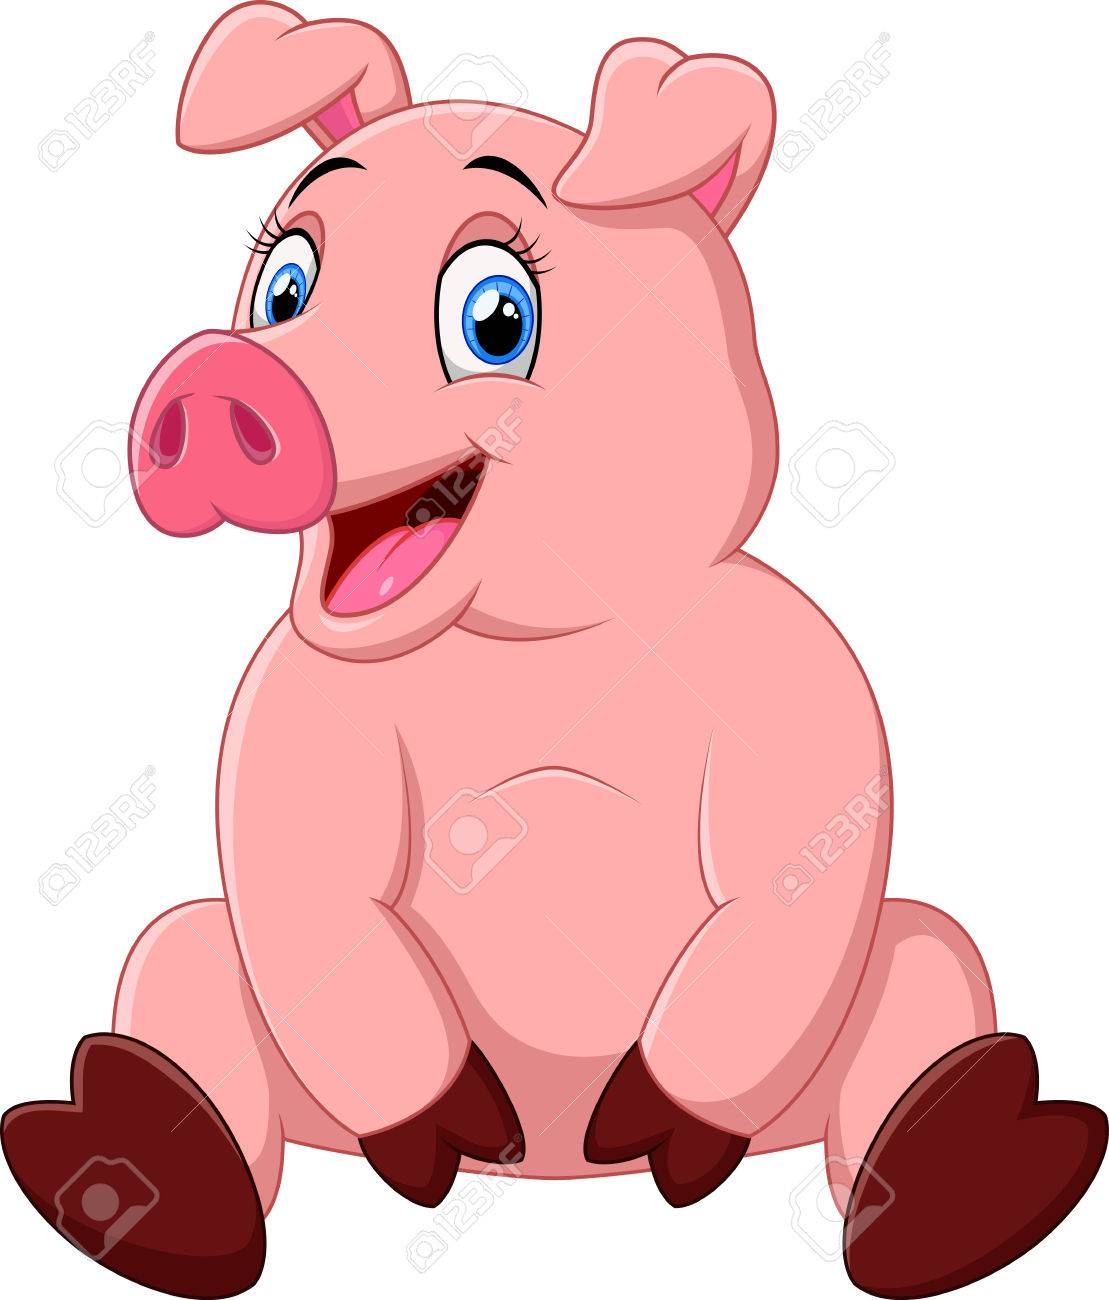 Cartoon Happy Pig Sitting Royalty Free Cliparts Vectors And Stock Illustration Image 49342993